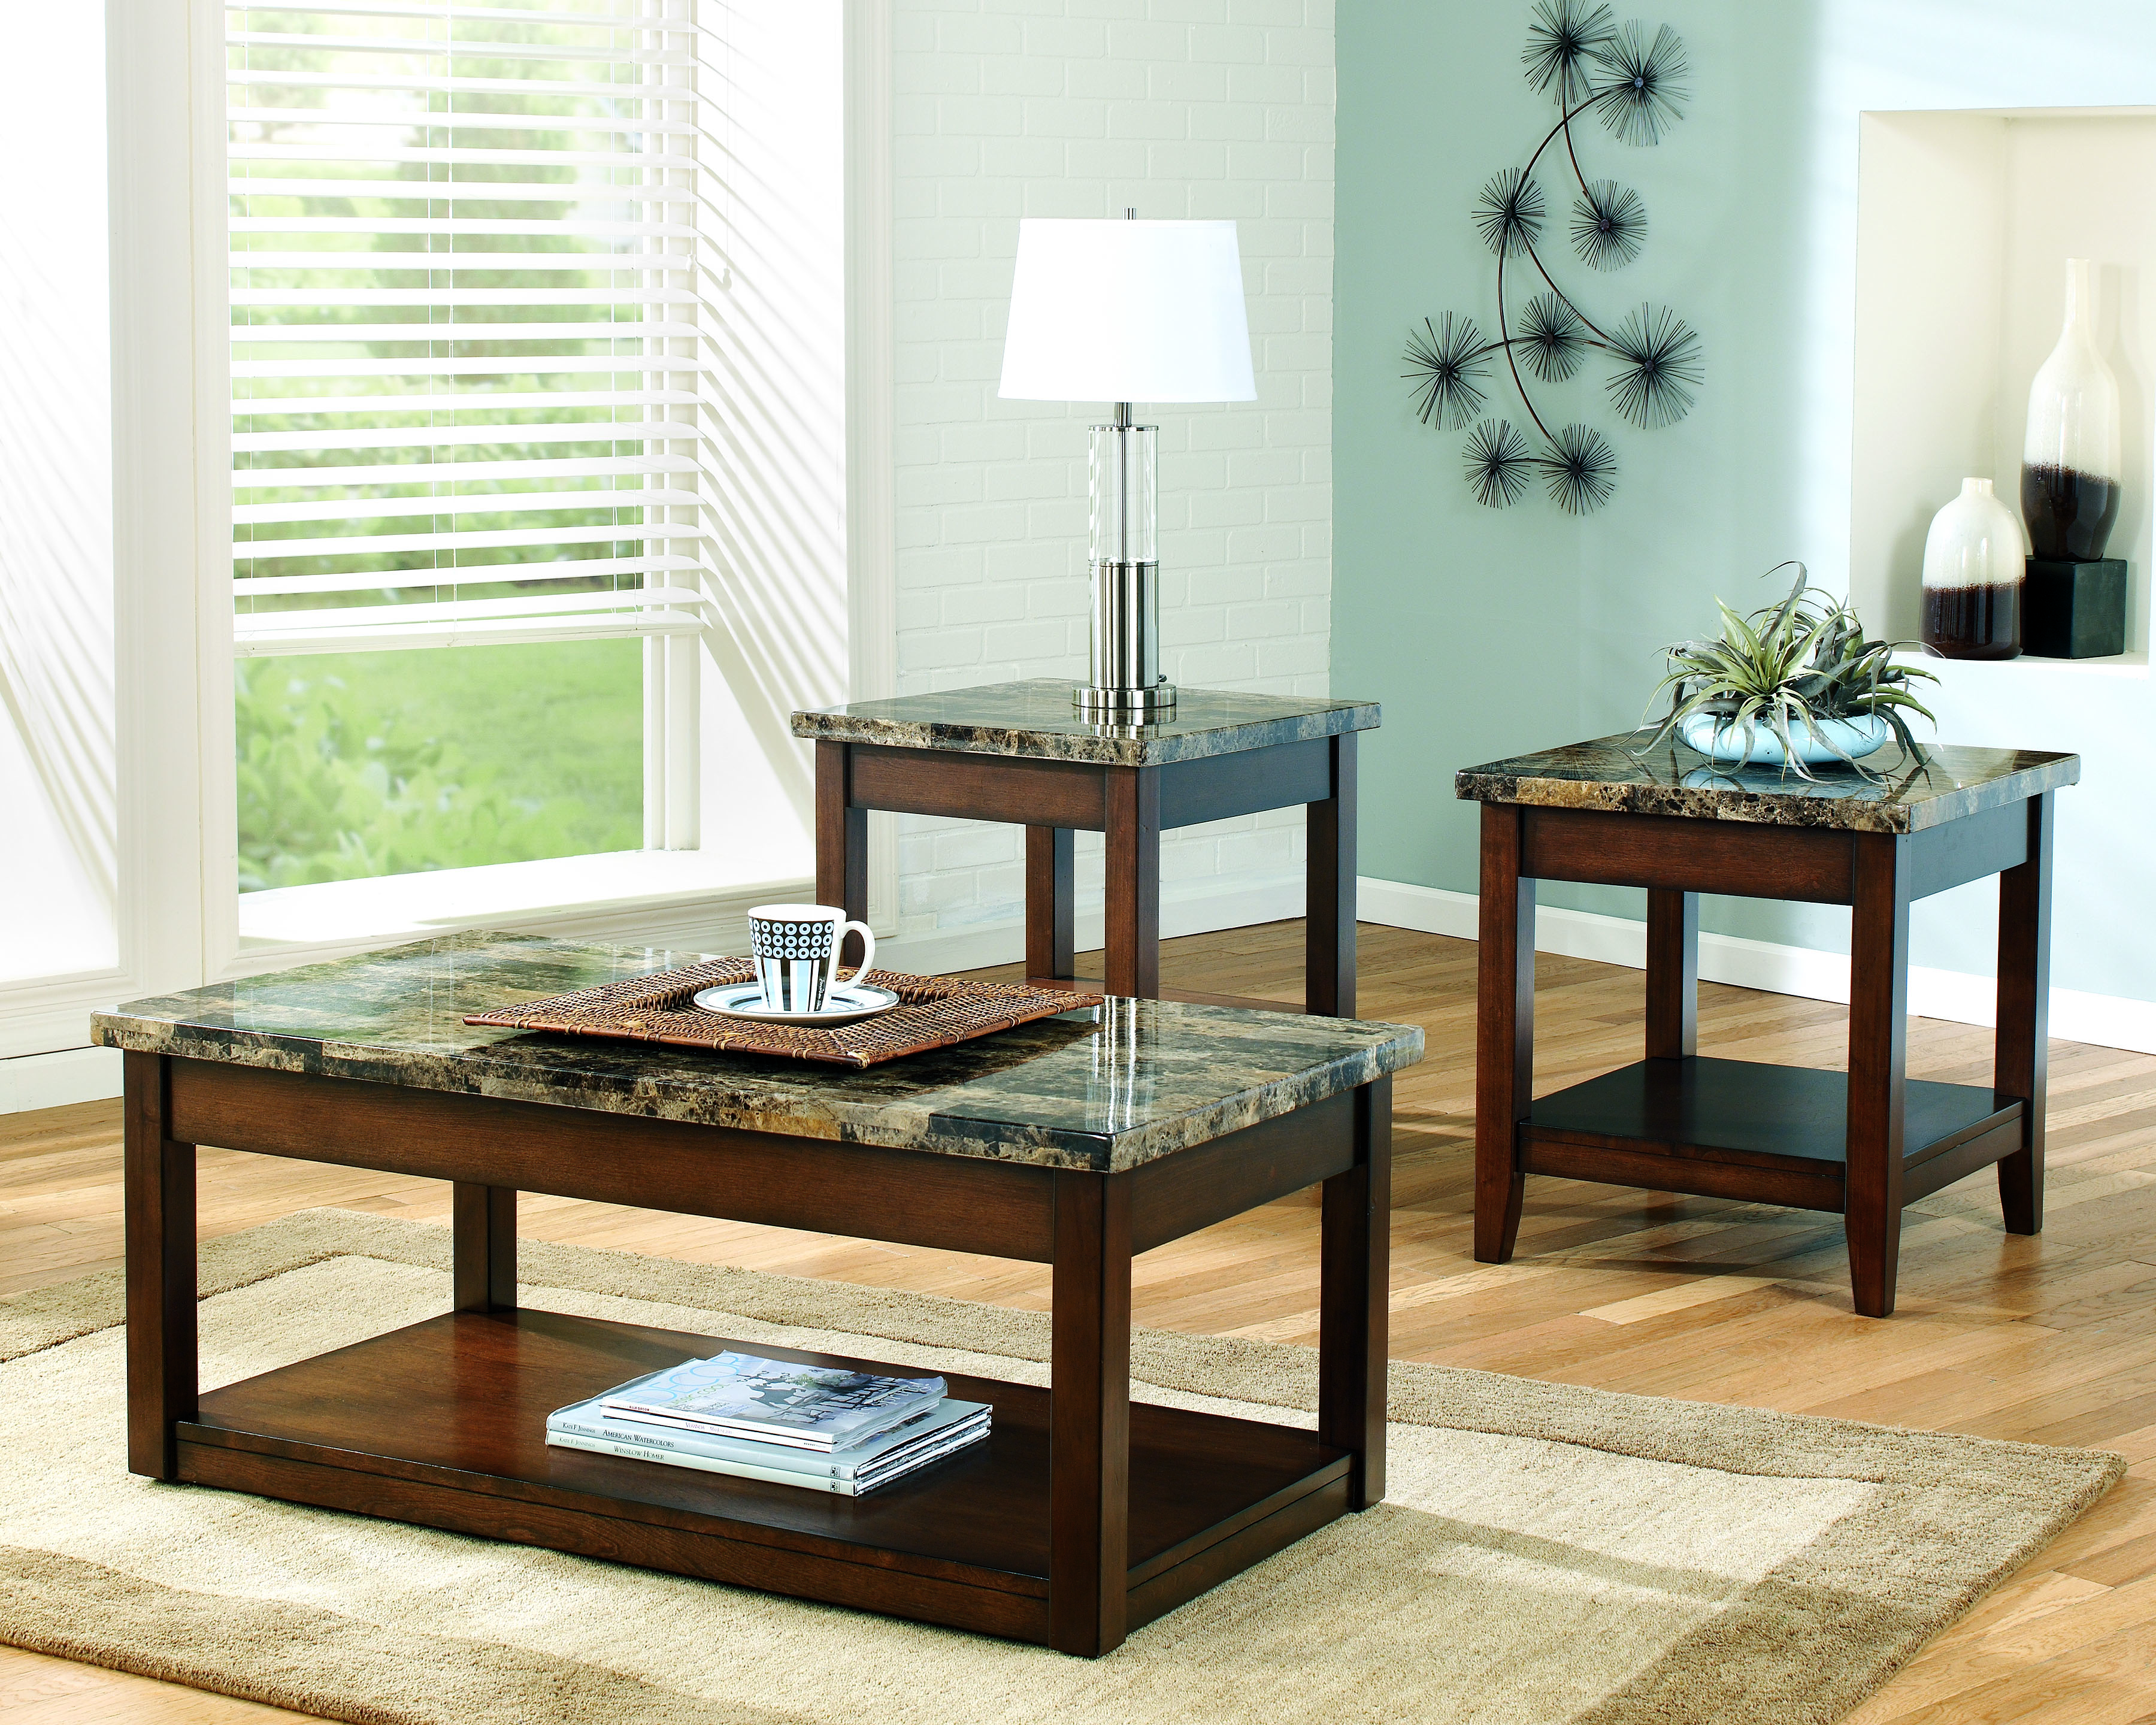 Ashley Furniture Coffee Table Set 3600 x 2880